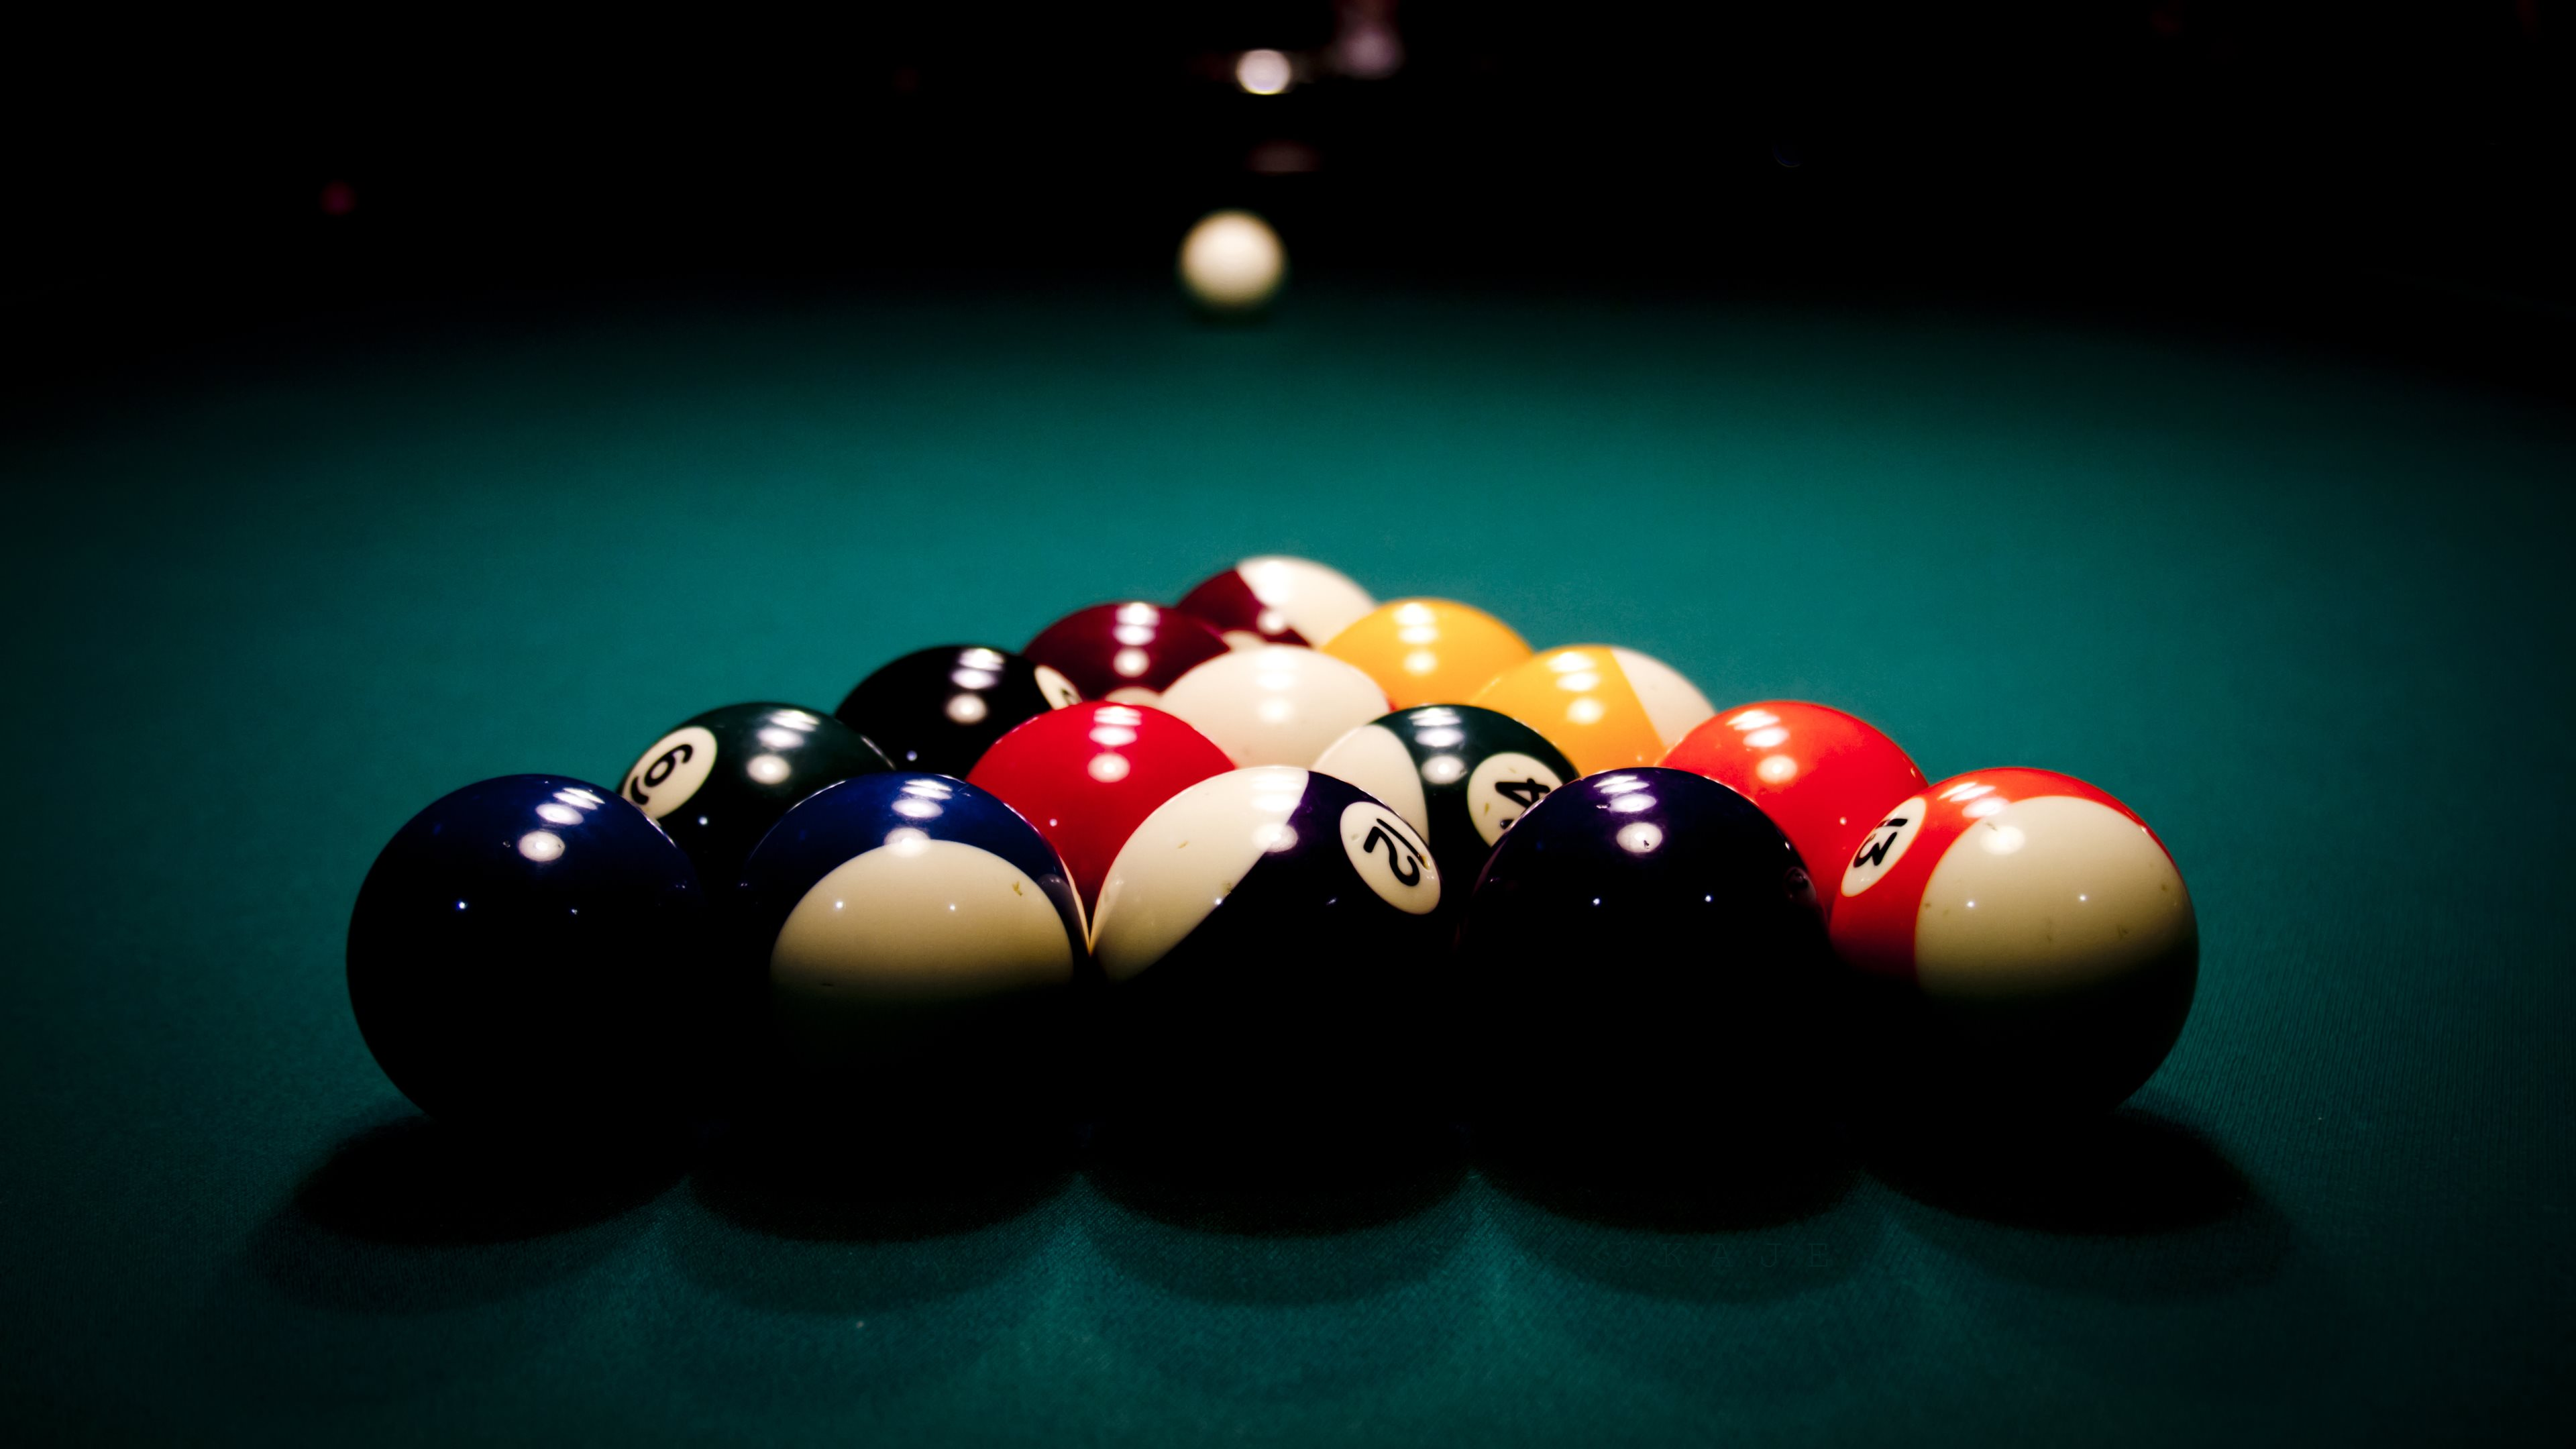 Snooker Wallpapers HD Backgrounds Images Pics Photos 3840x2160